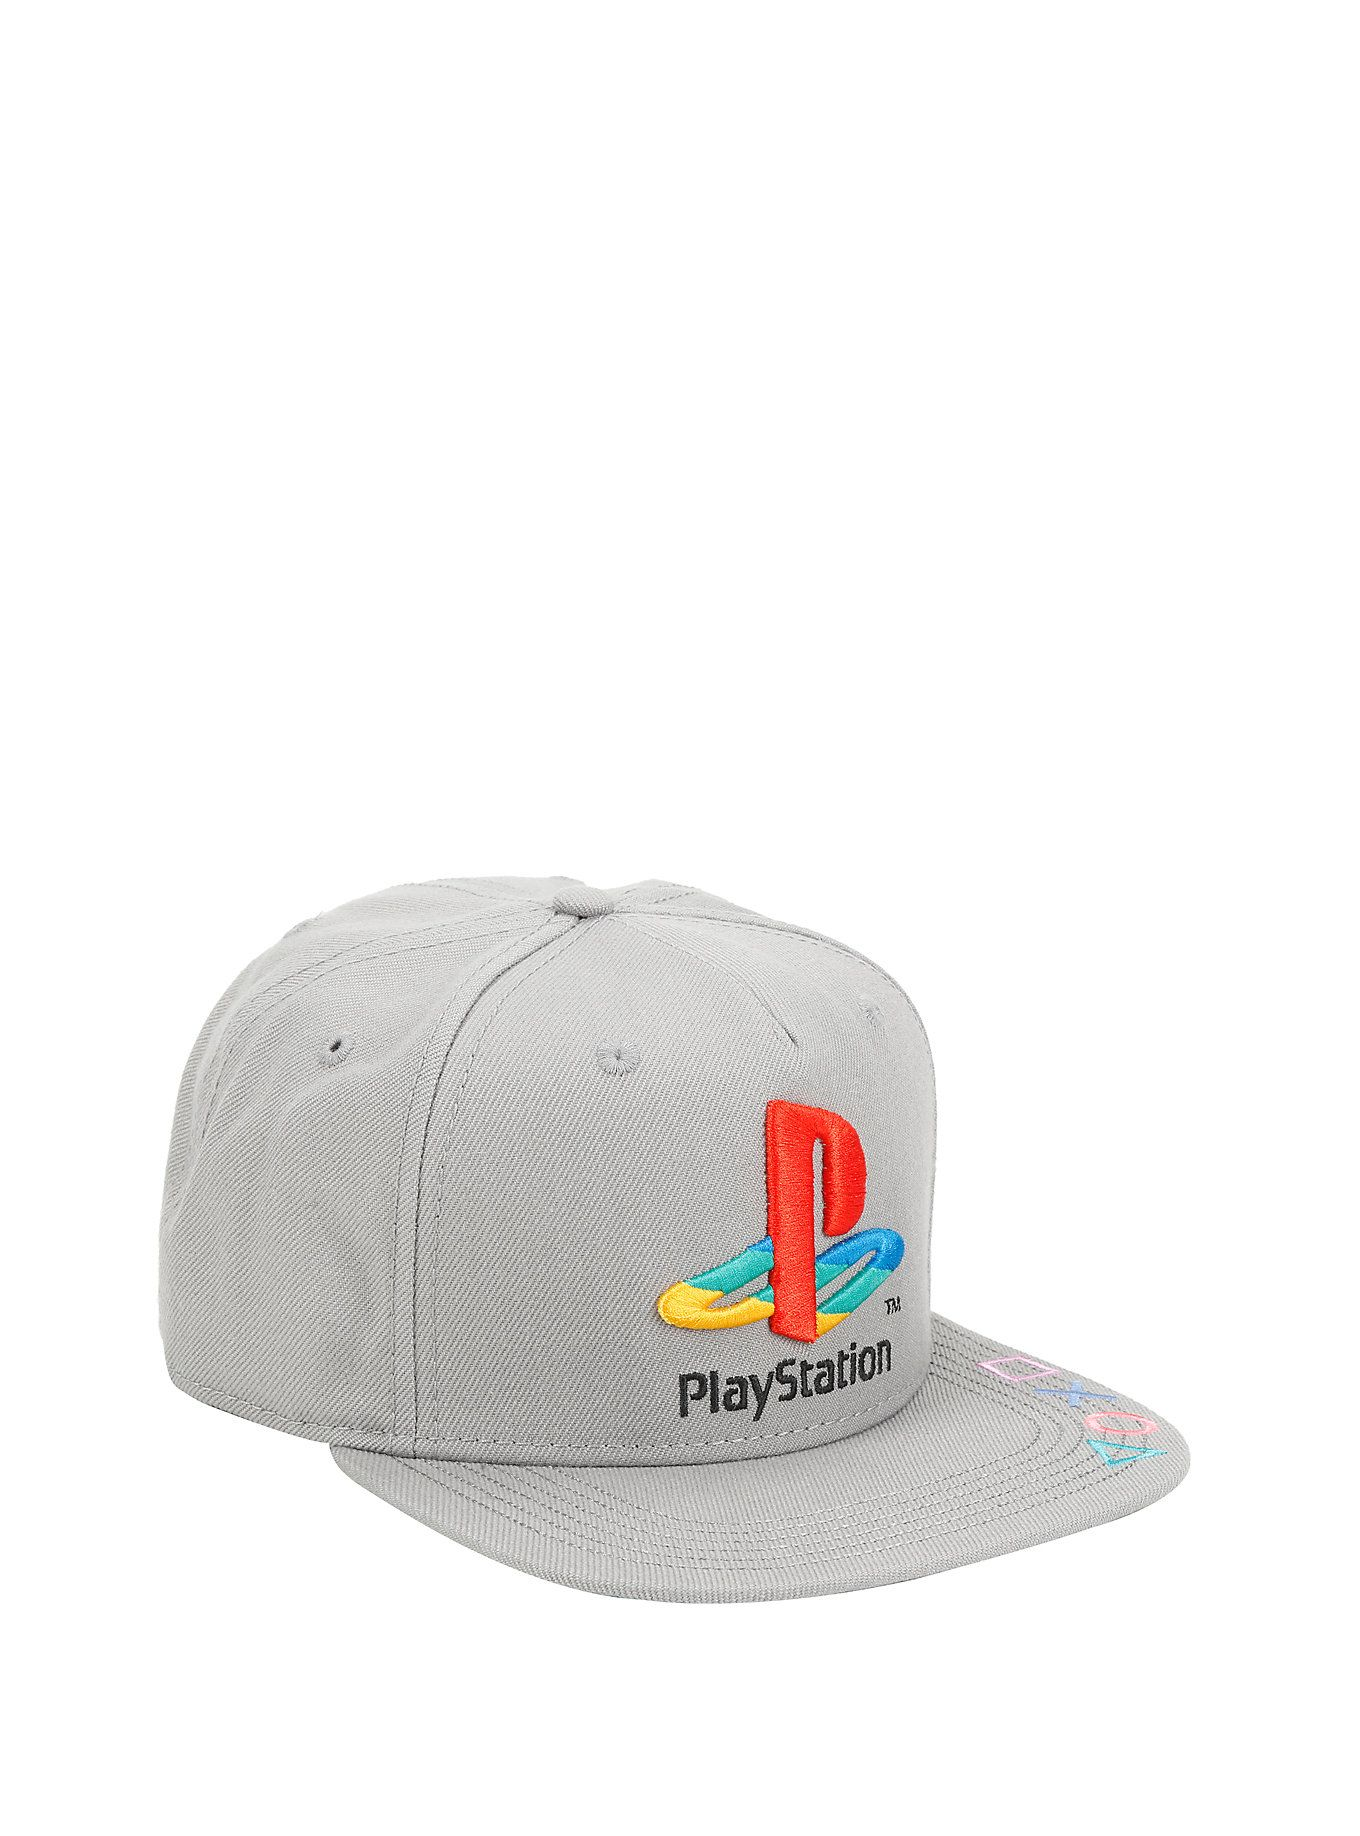 26cb2cf560f This is perfect for the classic gamer. Grey snapback hat featuring an  embroidered Playstation logo and button symbol embroidery detail on bill.